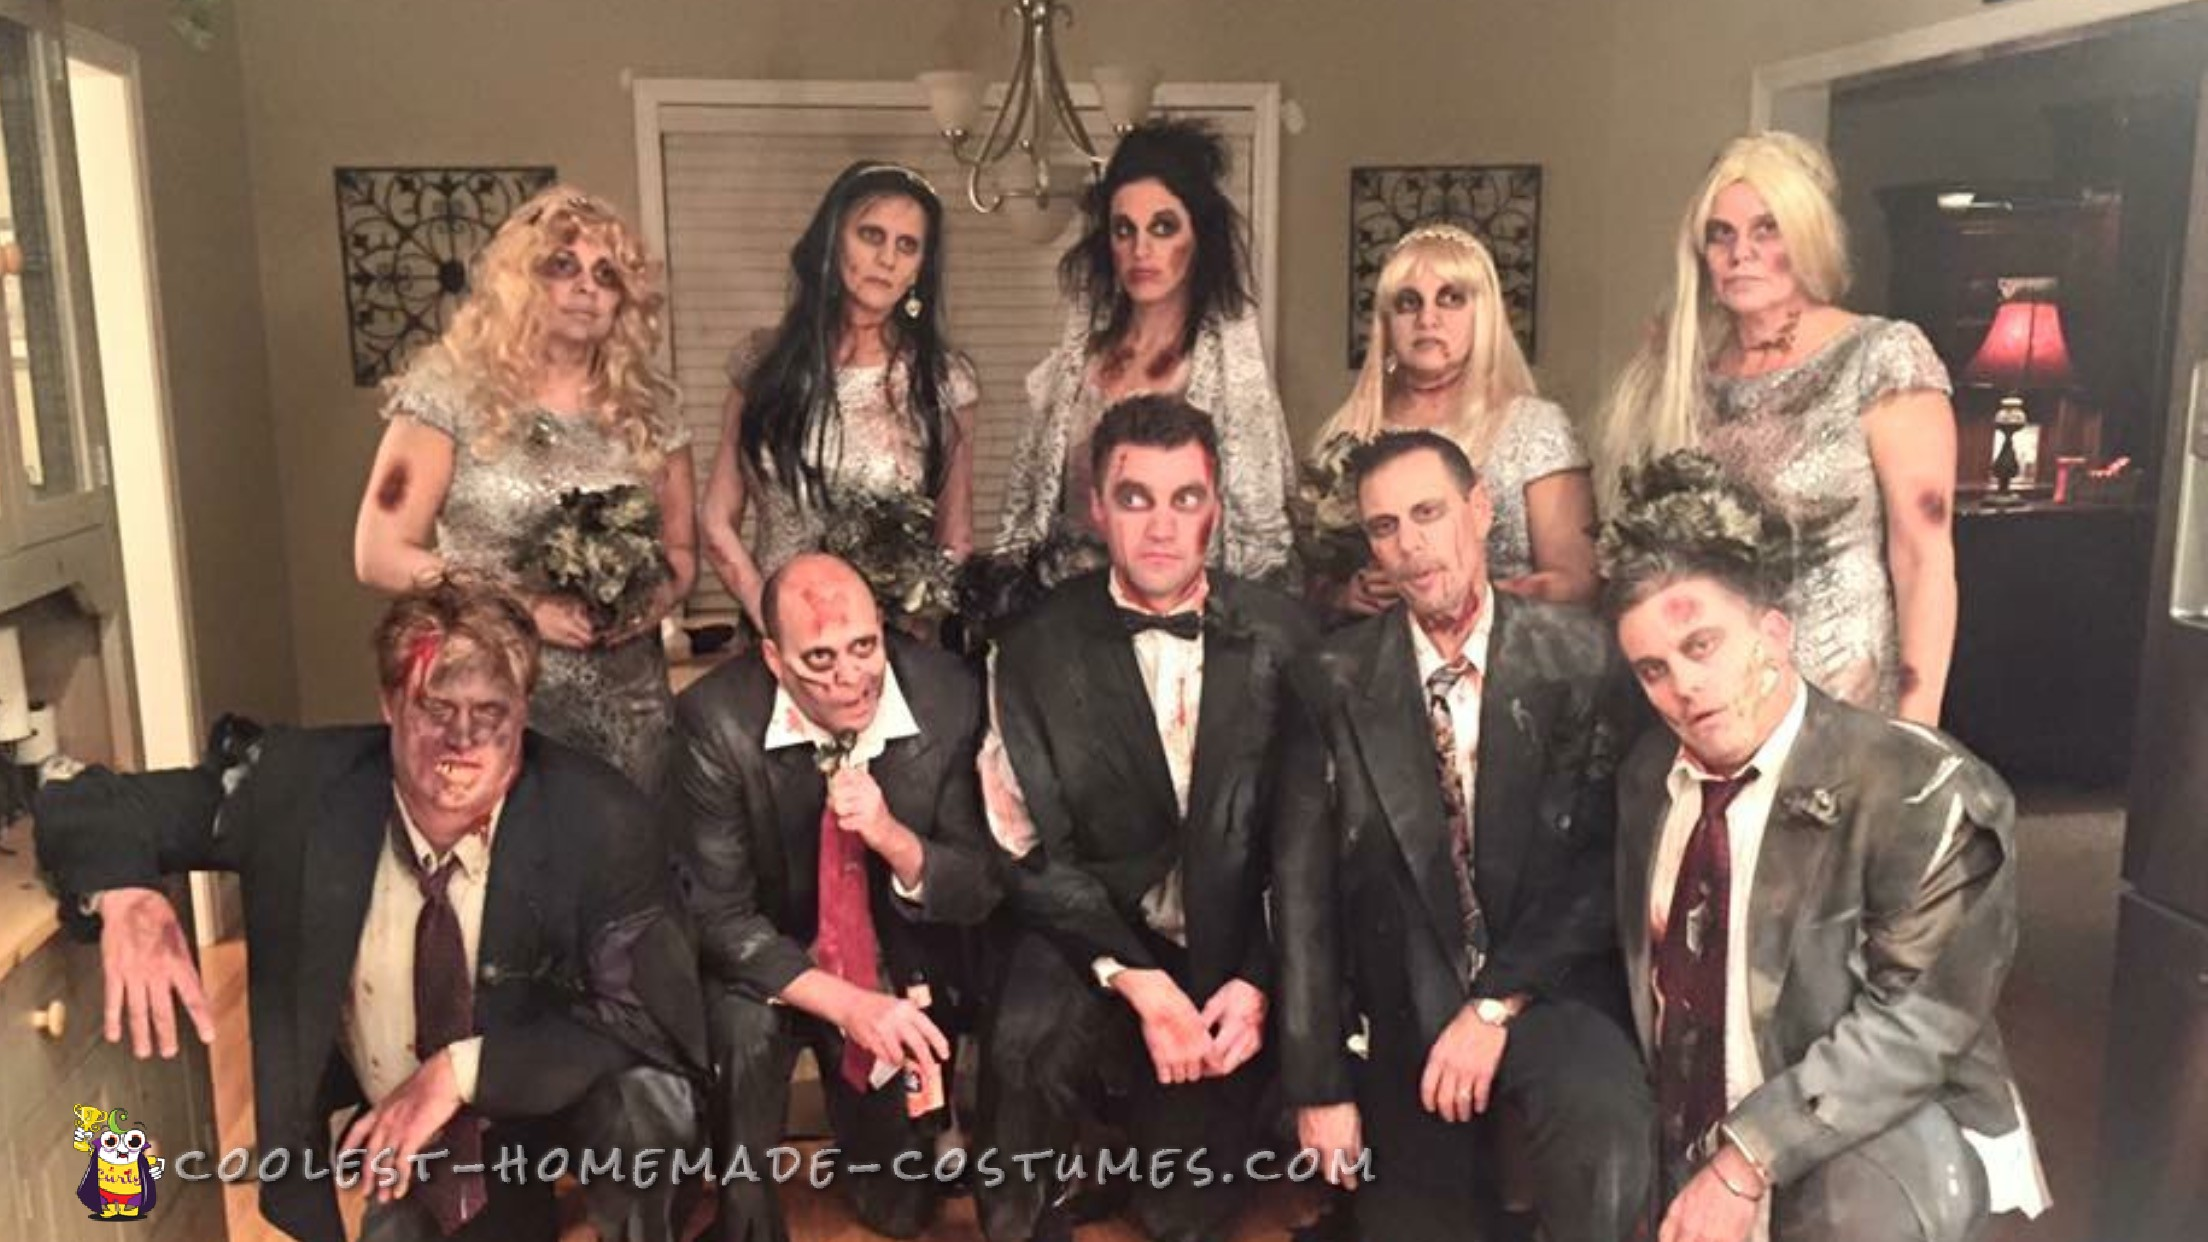 Wedding Massacre Group Costume